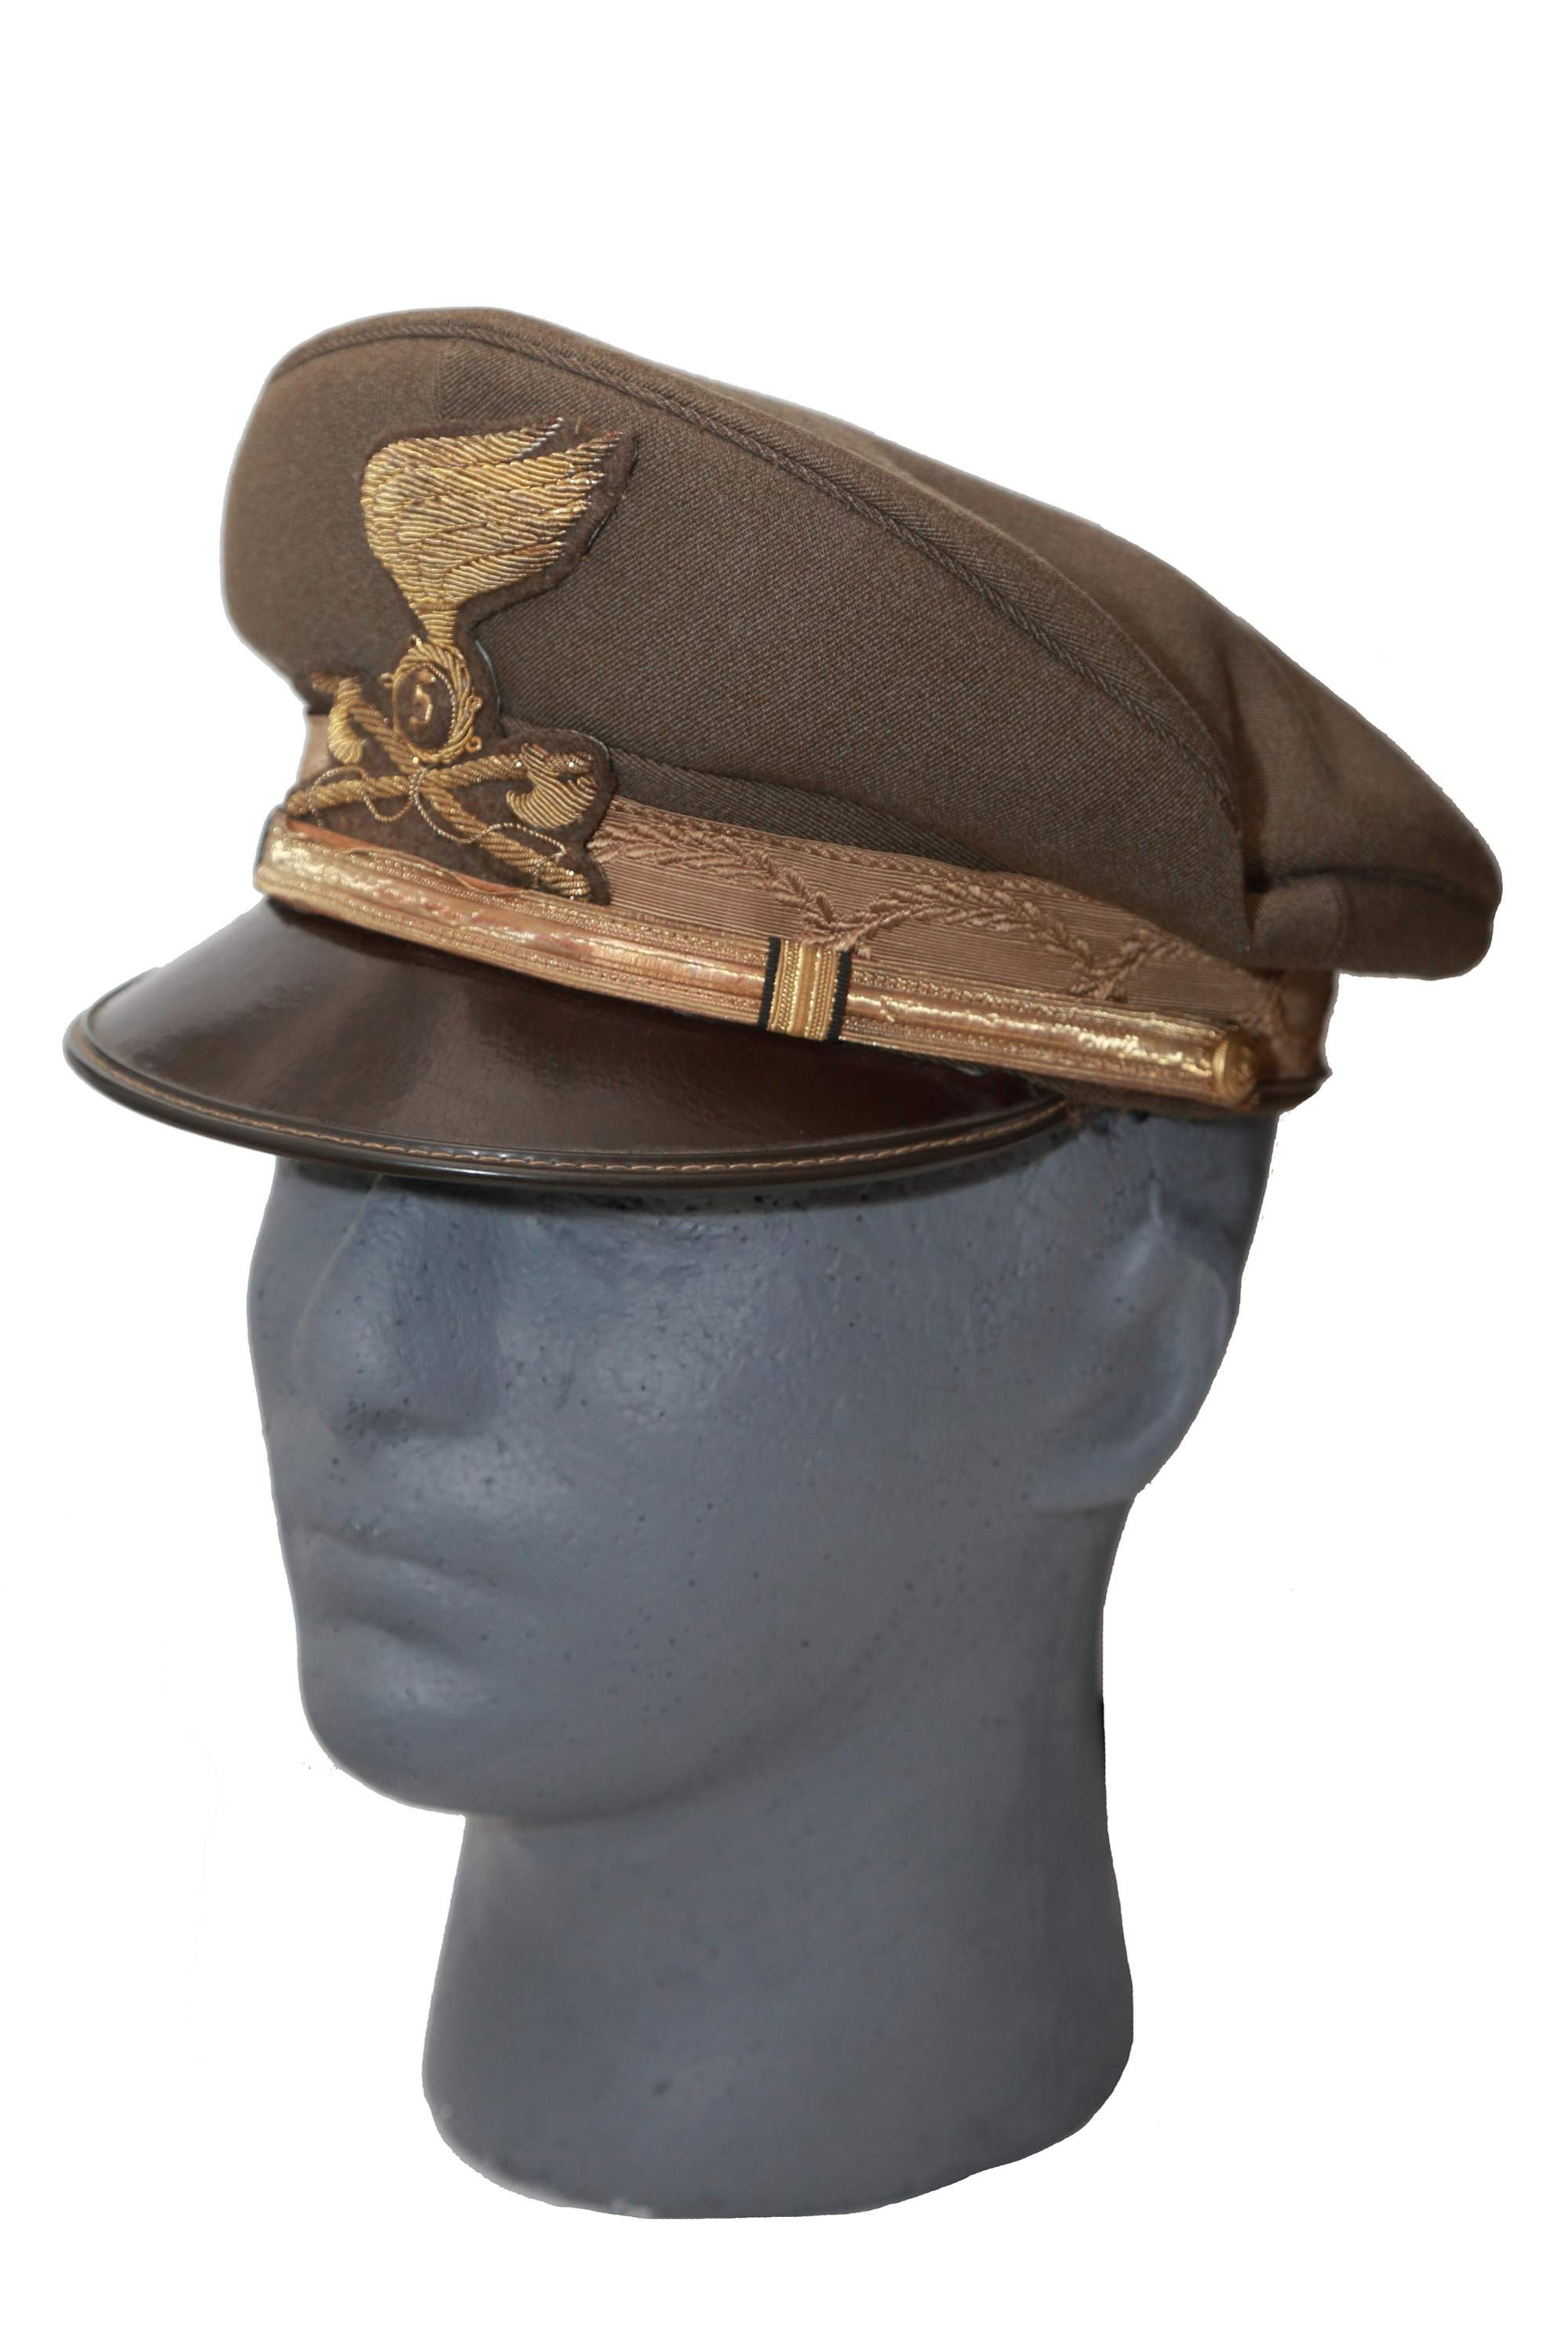 Need Help Italian Officers Cap